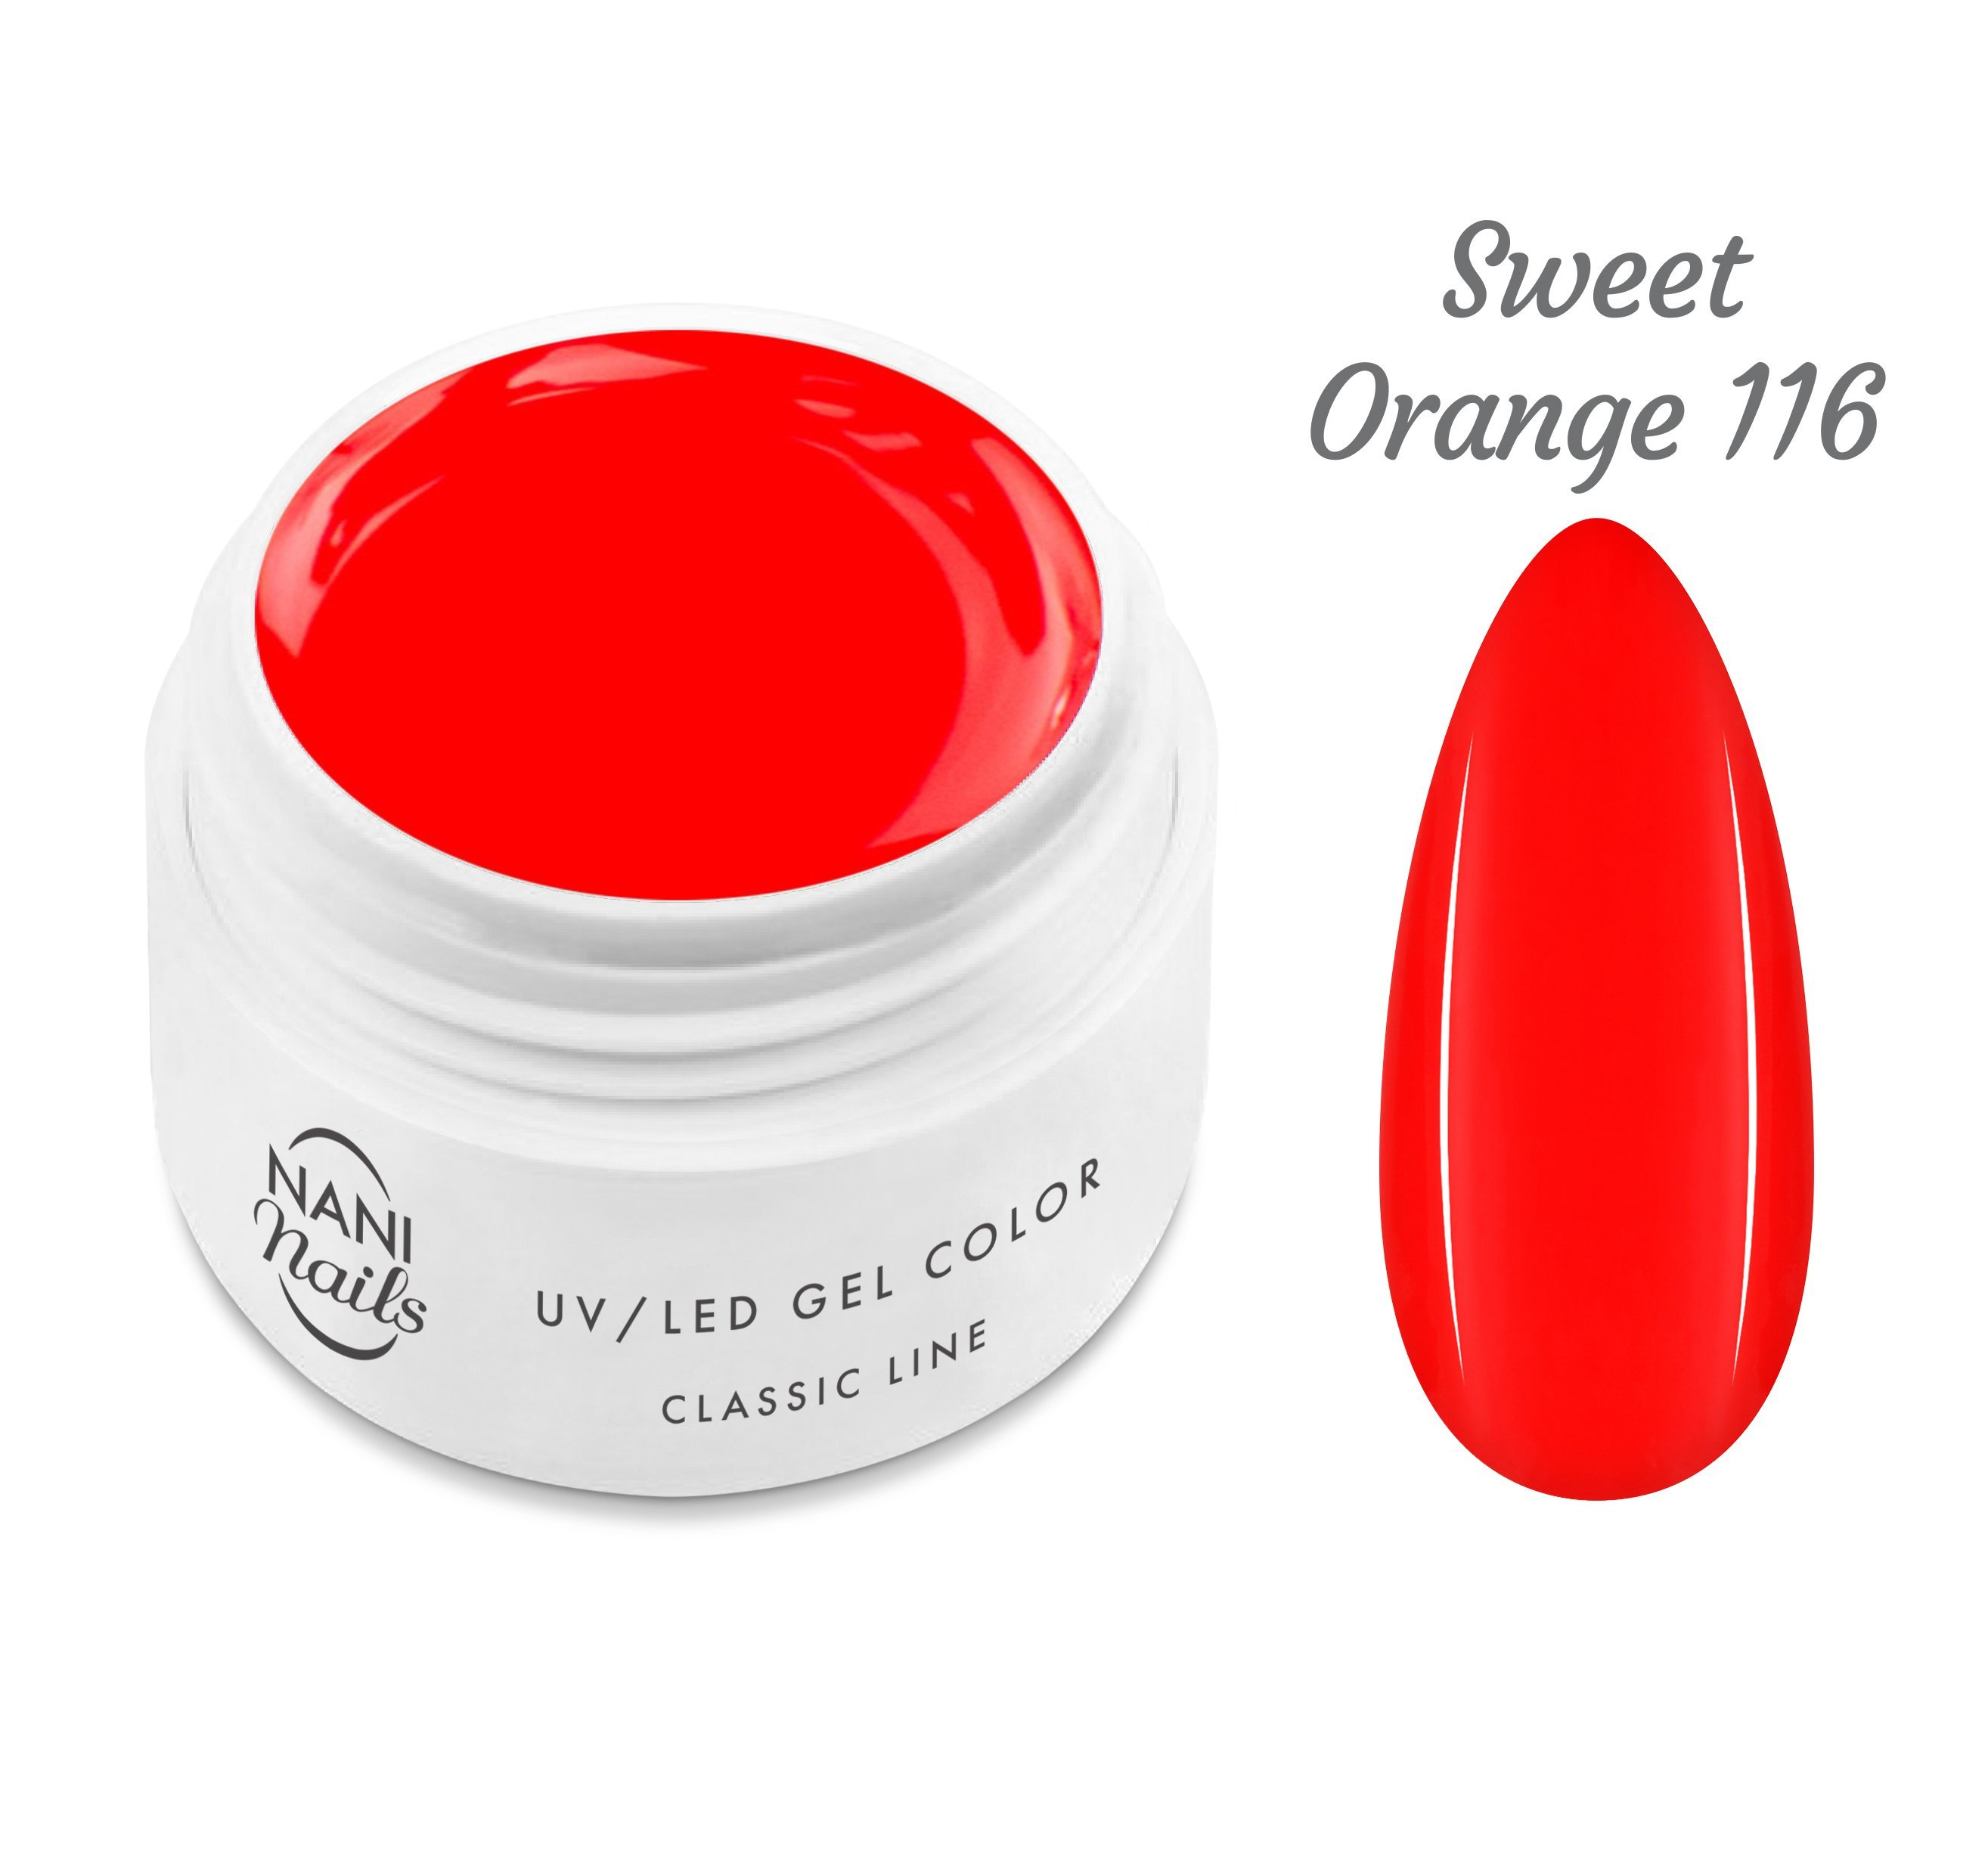 NANI UV gél Classic Neon Line 5 ml - Sweet Orange